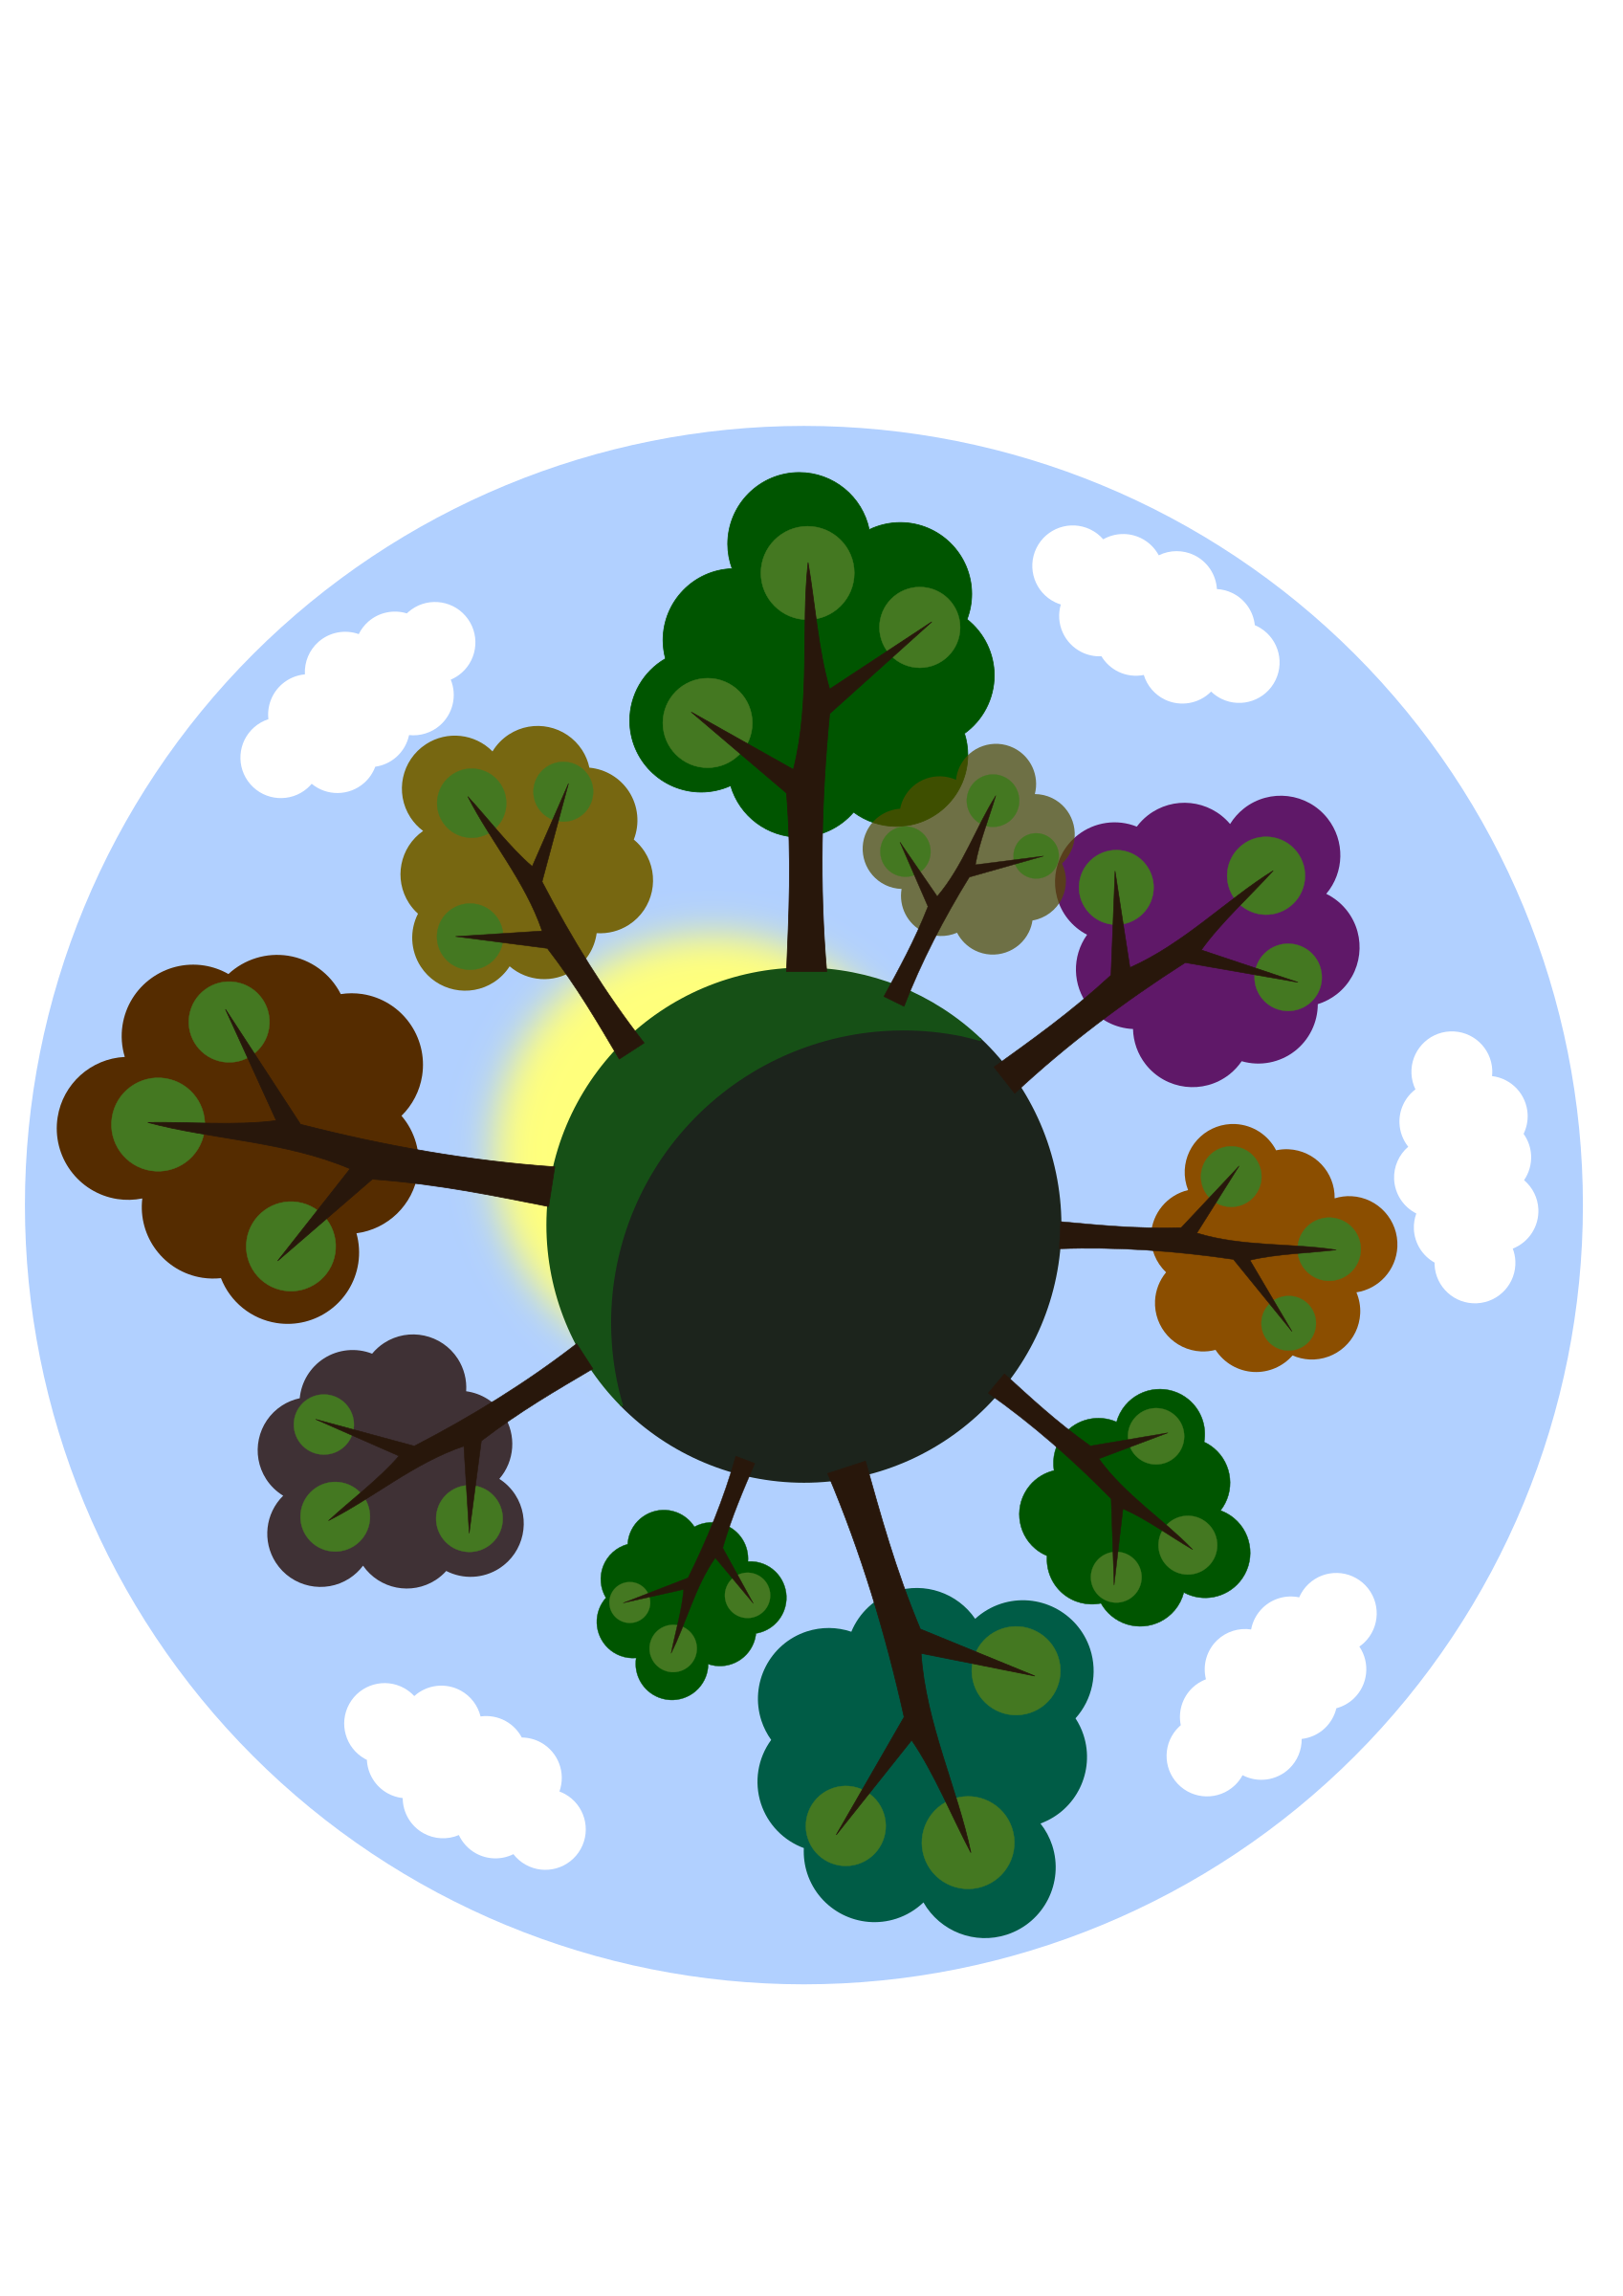 Tiny tree planet by Susa